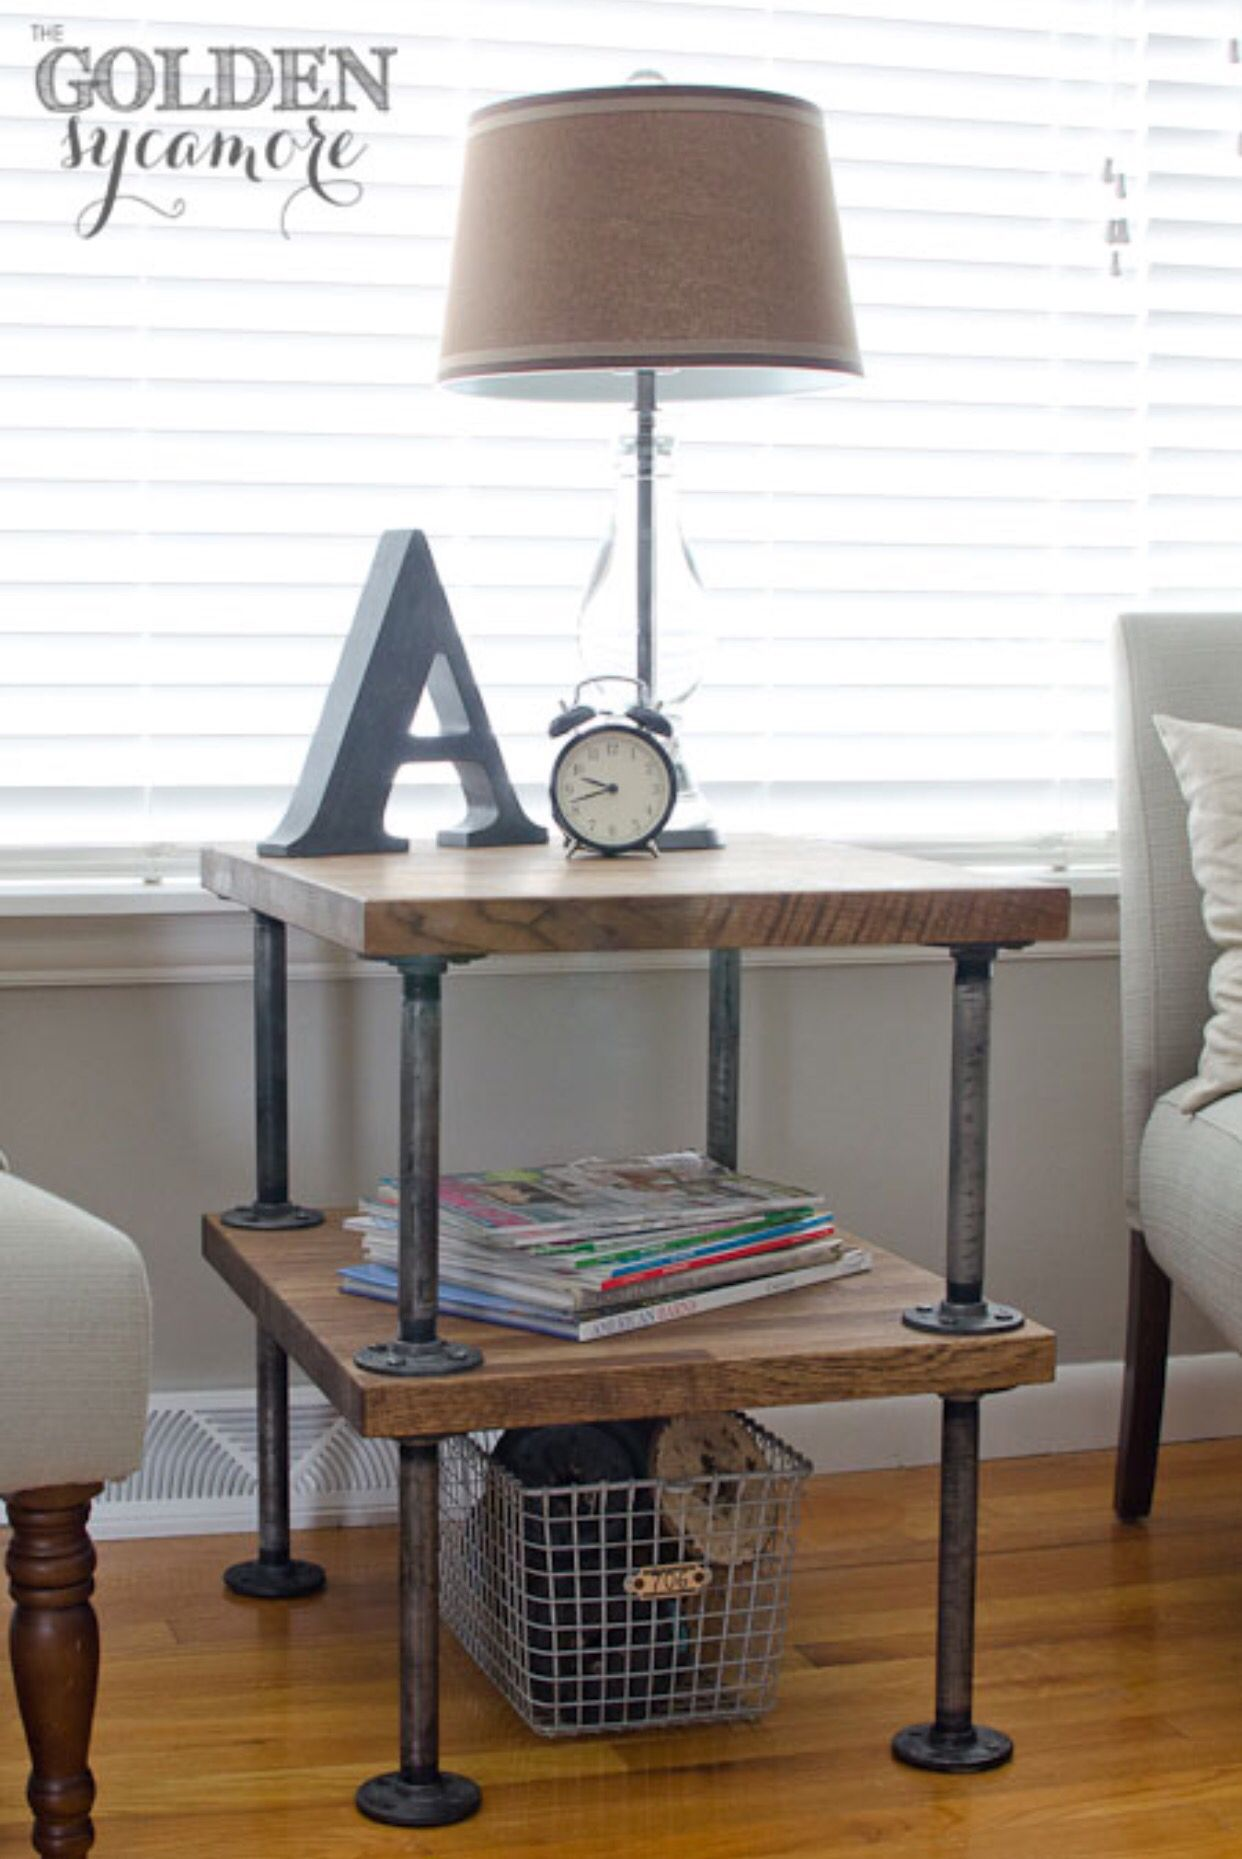 industrial accent table carpenteando diy ideas bedside diysmall large lamp shades small round with drawer reclaimed wood orlando miniature tiffany style lamps clearance fine